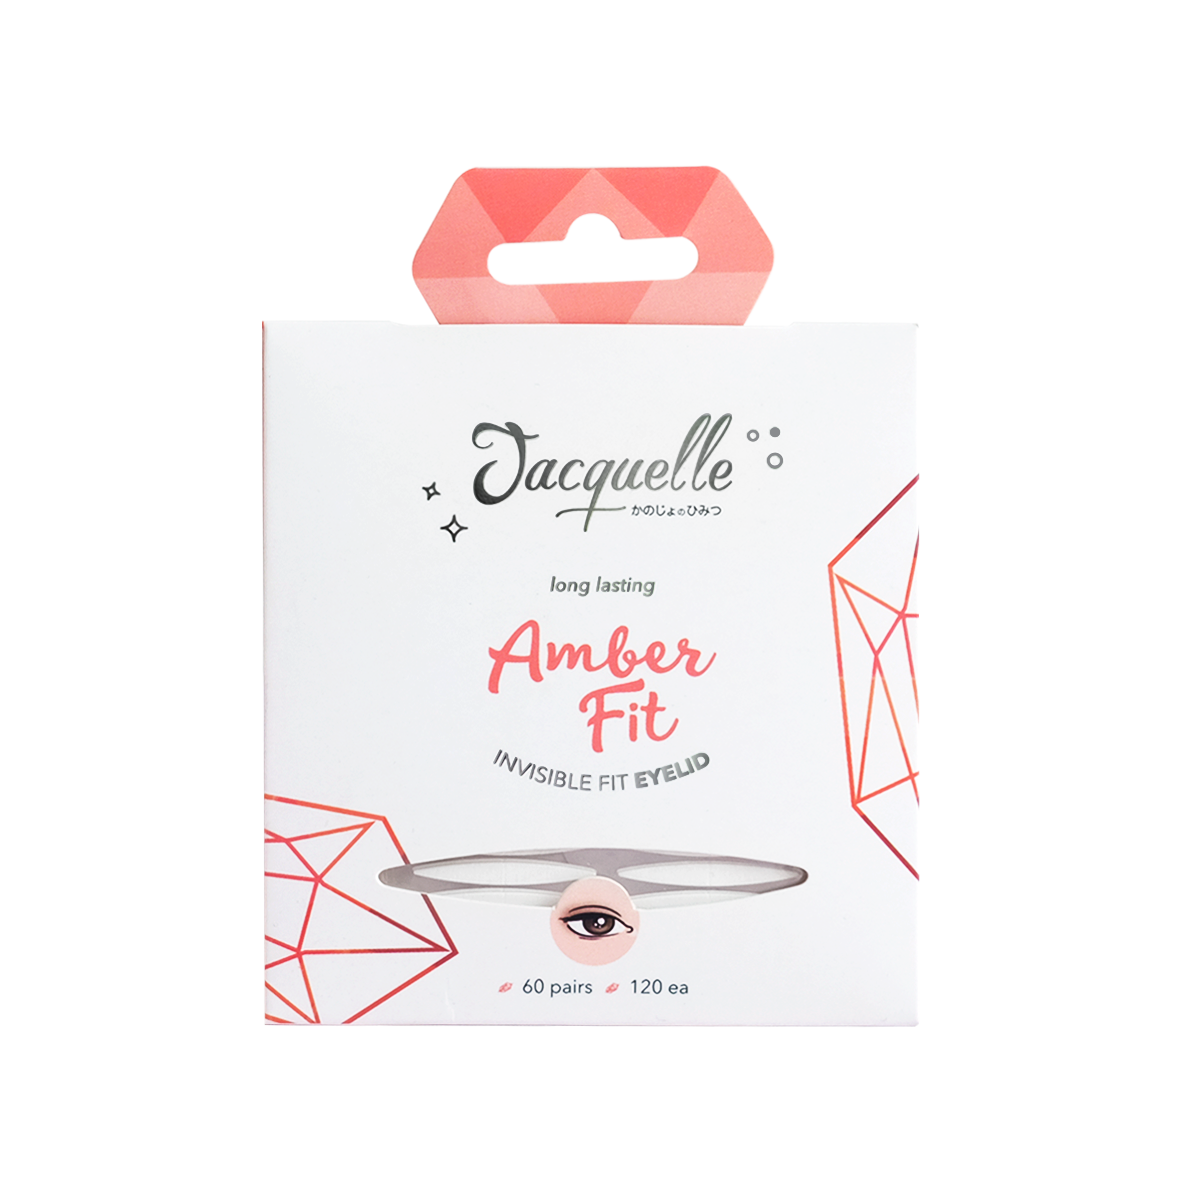 Jacquelle Invisible Fit Eyelid Amber Fit thumbnail